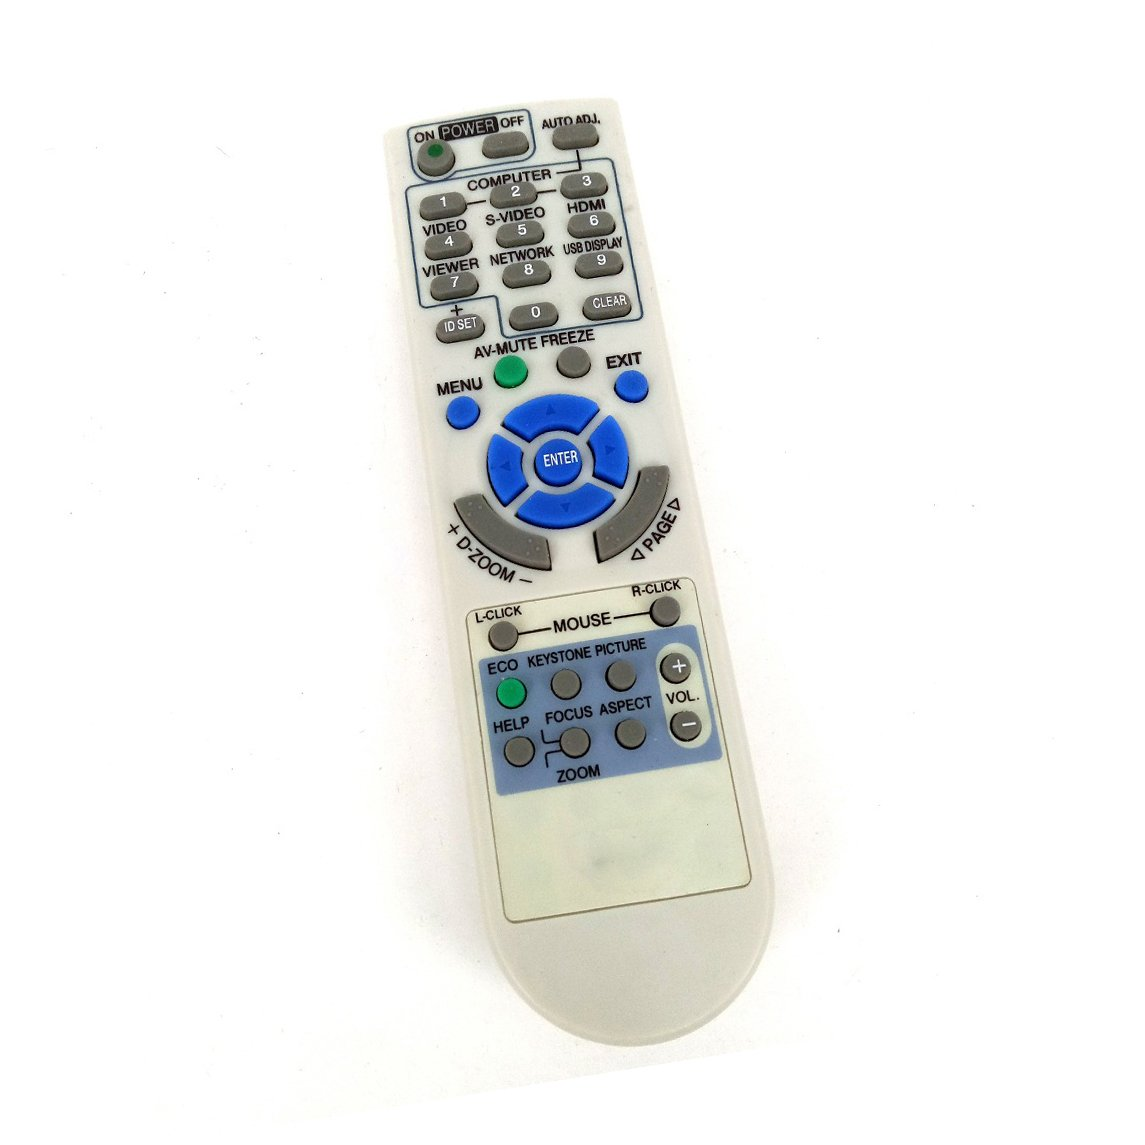 Replacement Projector Remote Control for NEC LT380 LT375+ NP310 NP400 NP400C NP54+ NP60+ NP-M322W NP-M322X by BOMAZ